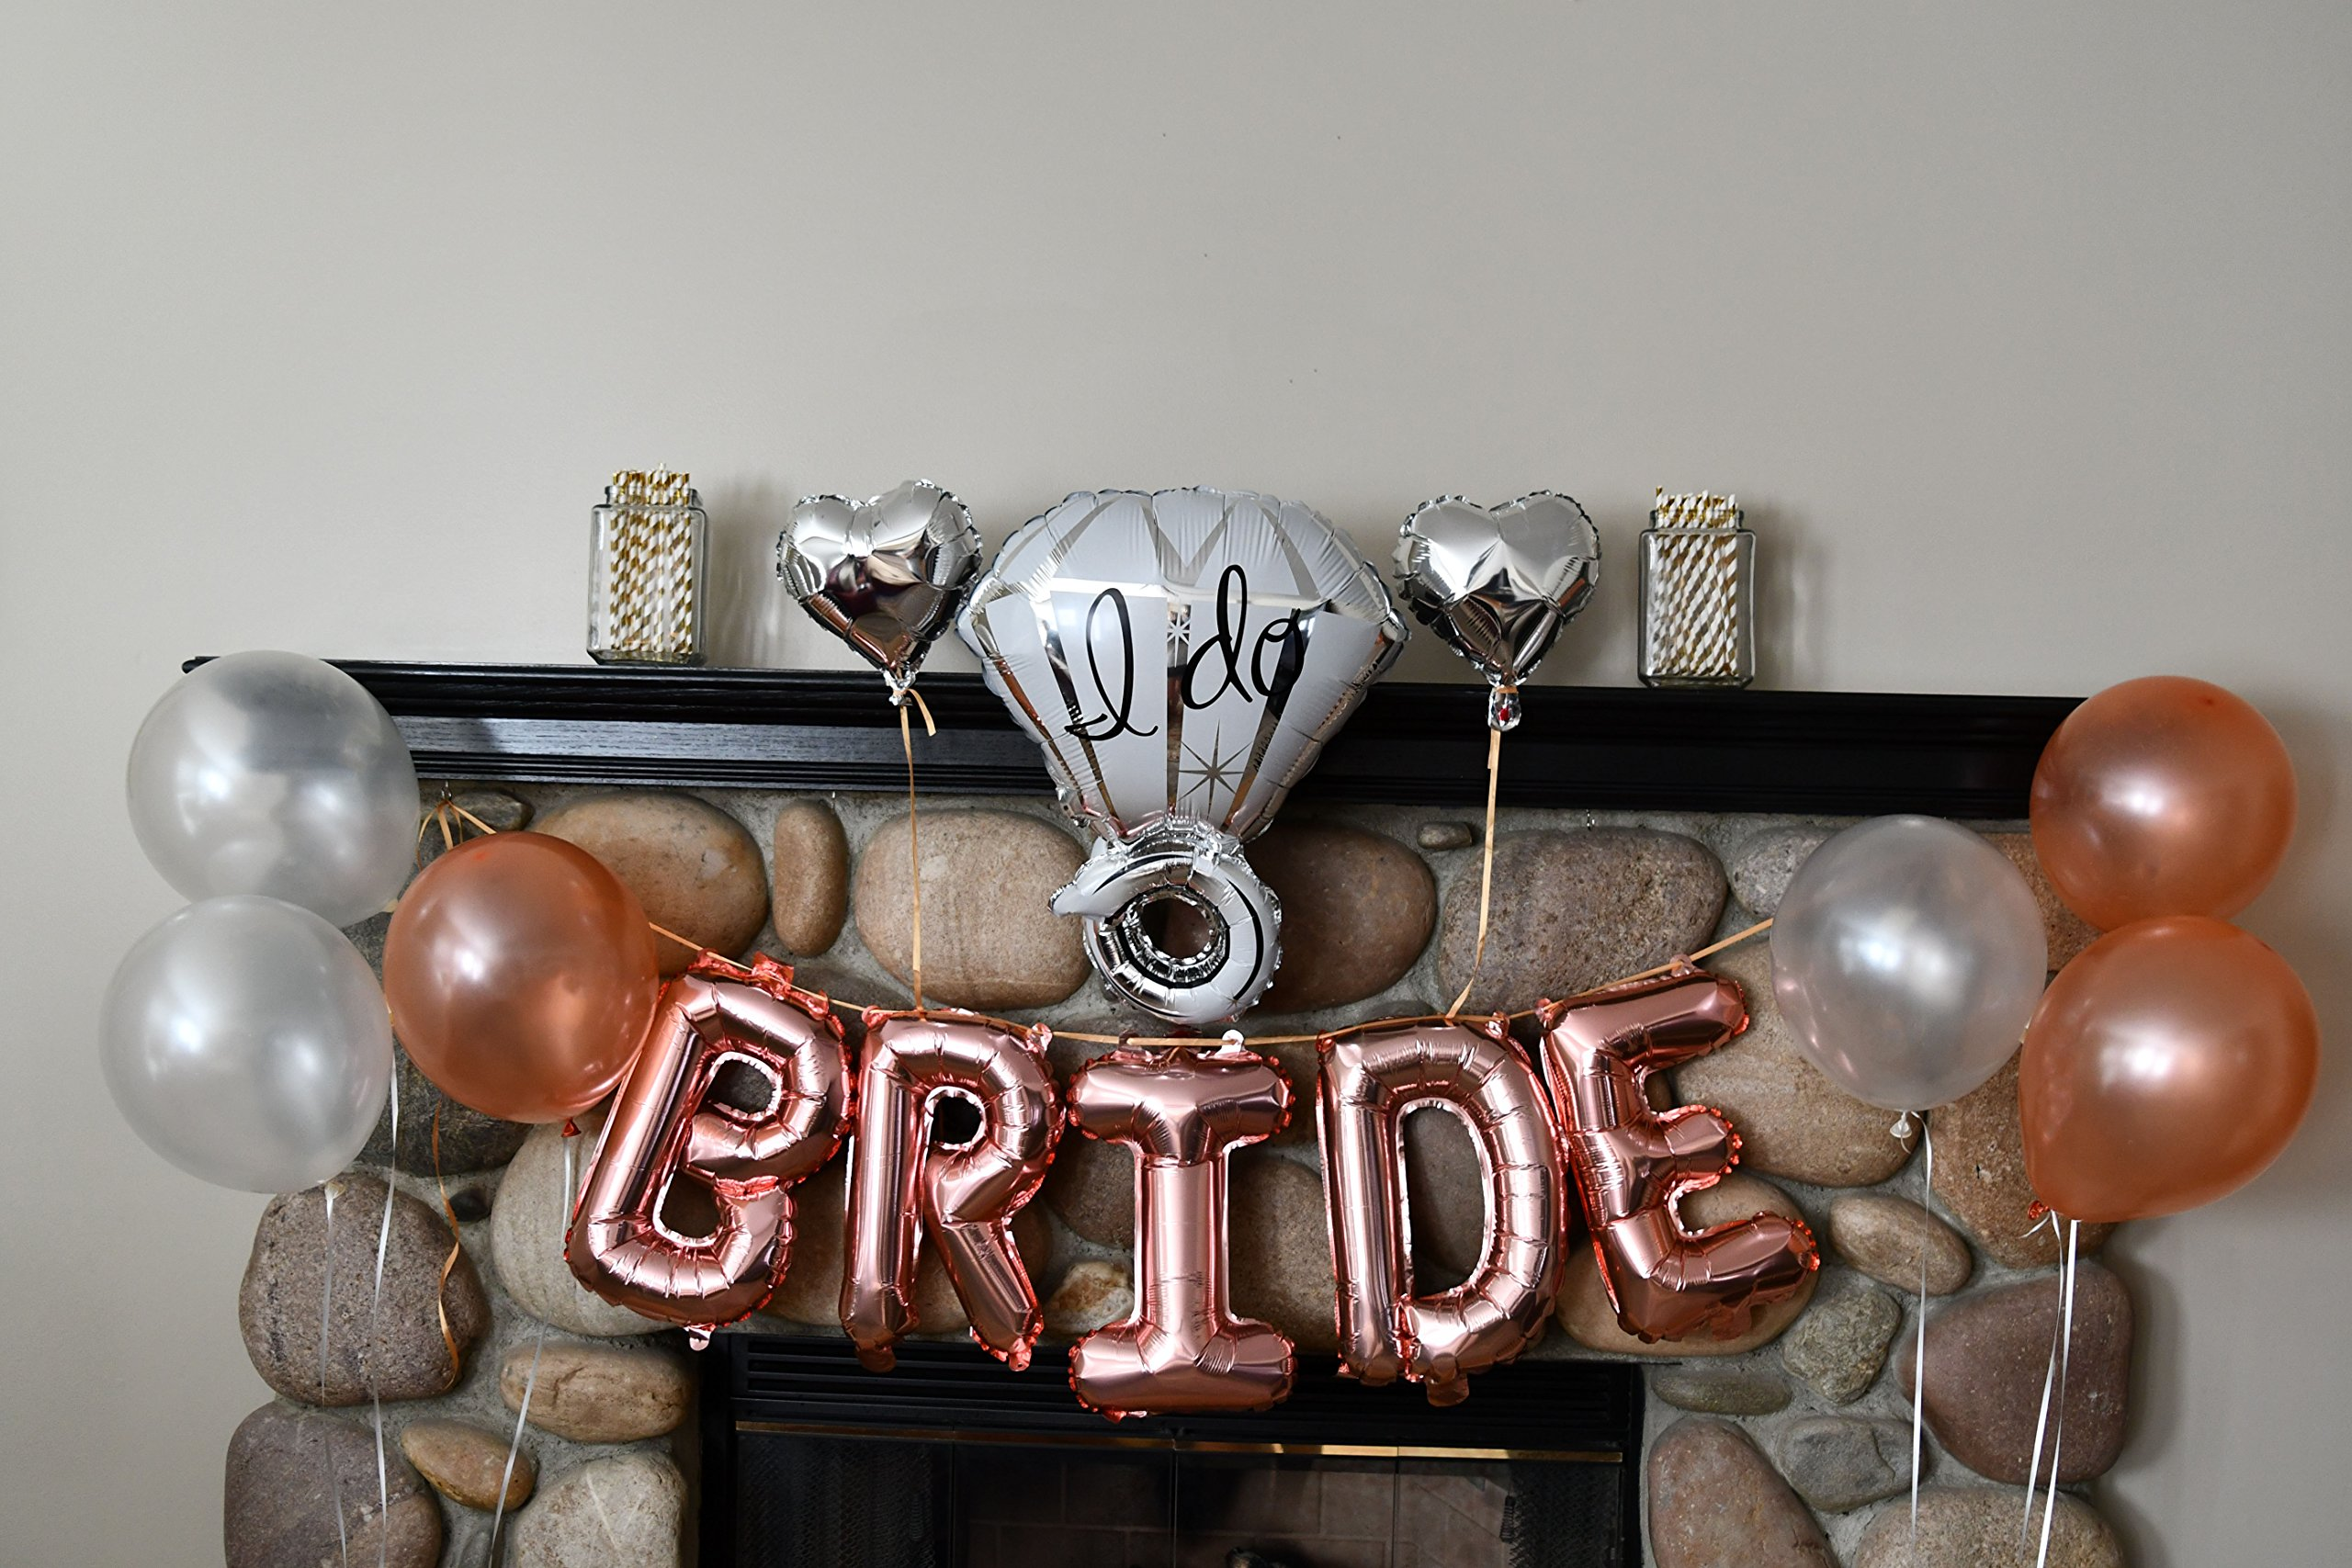 Bachelorette Party Decorations Pack - Rose Gold Party Supply Kit with Rose Gold, White Pearl and Silver Heart Balloons + Rose Gold Straws + The Bride Sash + Bride Foil Banner and Diamond Ring Balloon by Party Simple (Image #8)